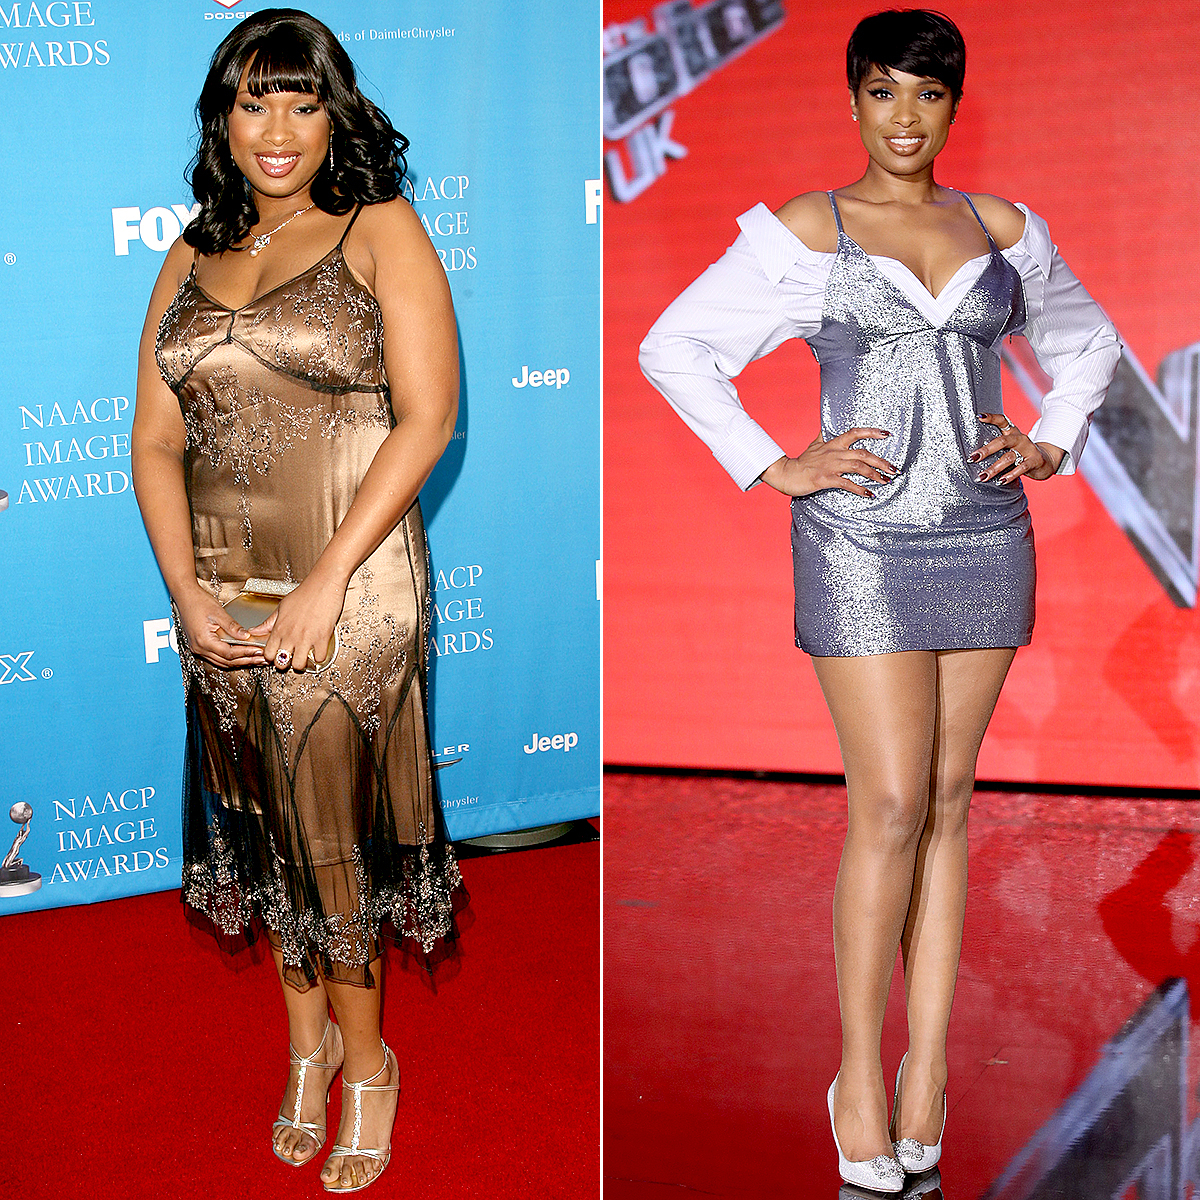 Jennifer Hudson at the NAACP Awards in 2006; Jennifer Hudson attends the final of The Voice UK on March 29, 2017 in London, United Kingdom.